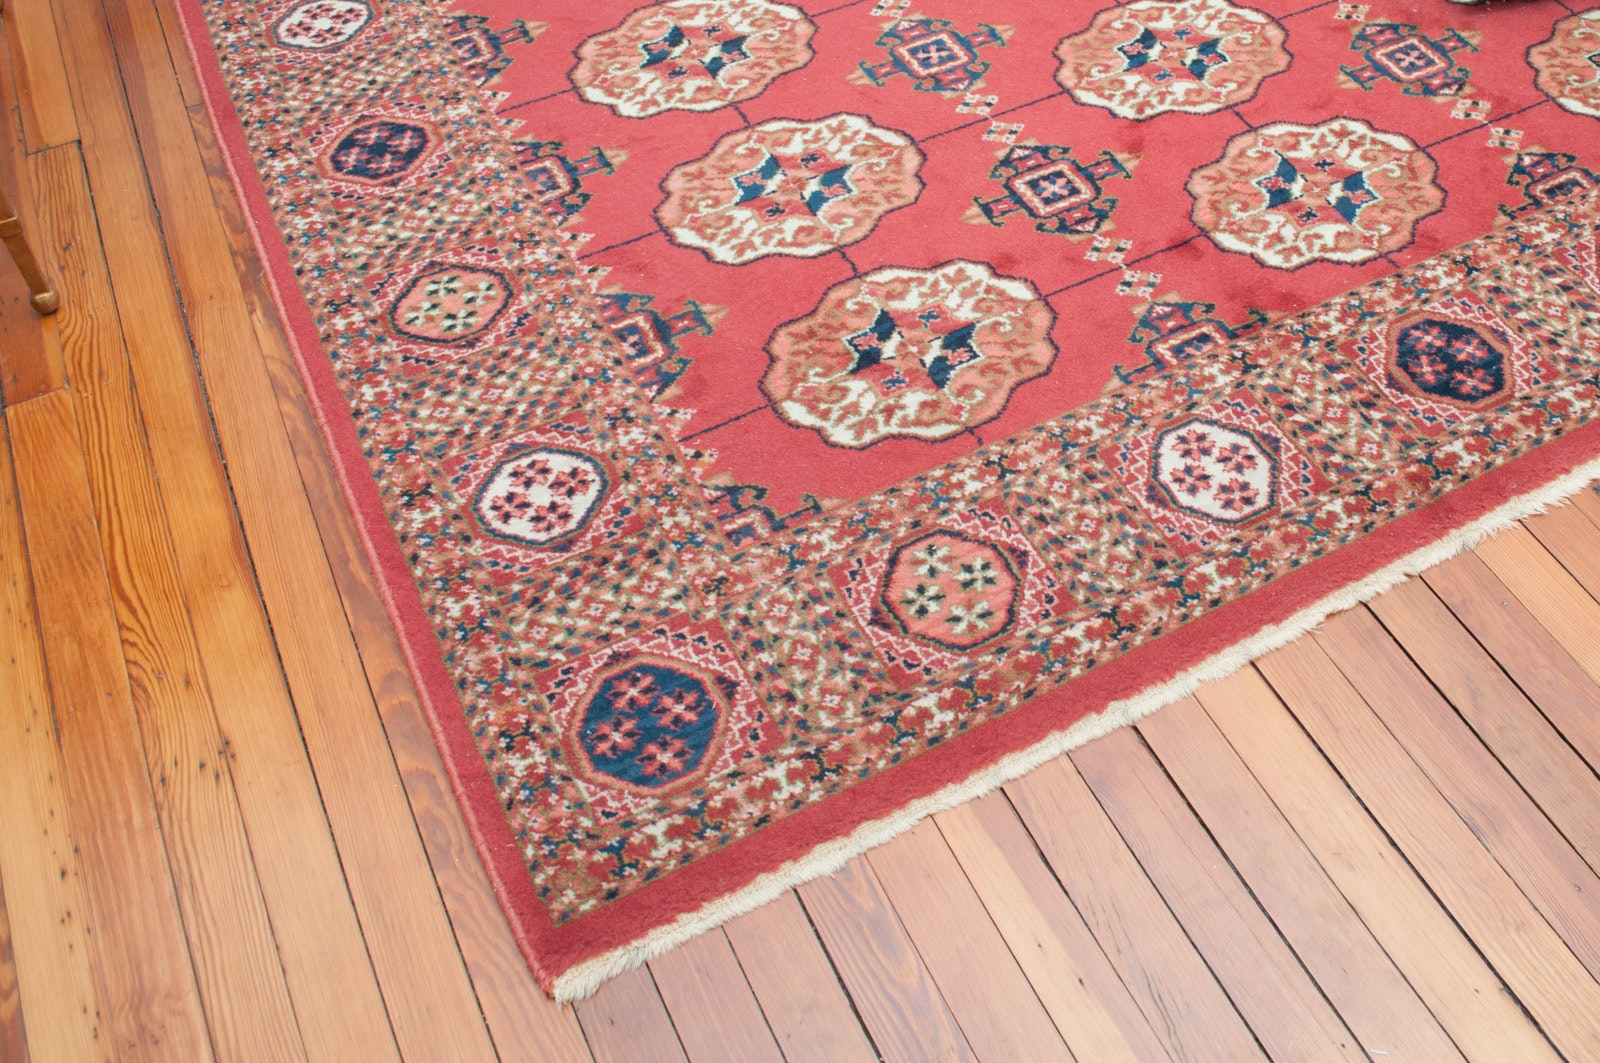 Hand-Knotted Bokhara-Style Wool Area Rug